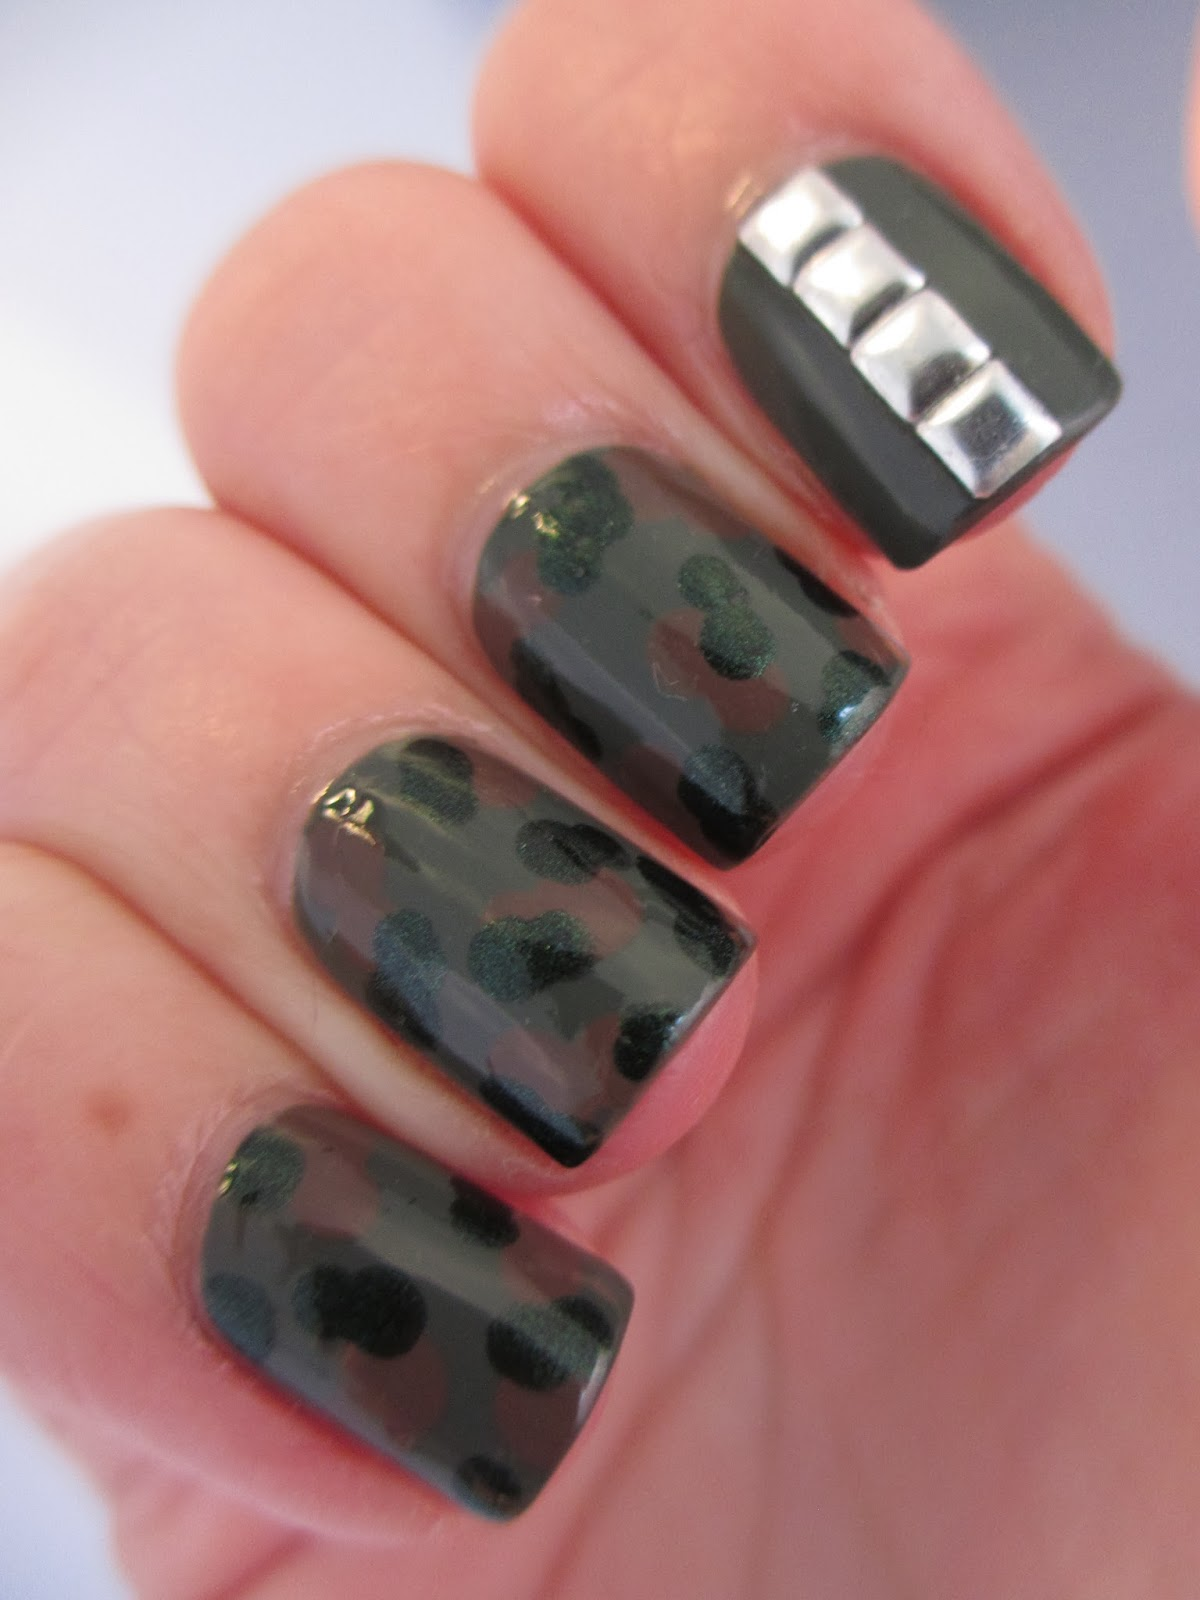 New-Look-Green-nail-polish-salute-nail-art